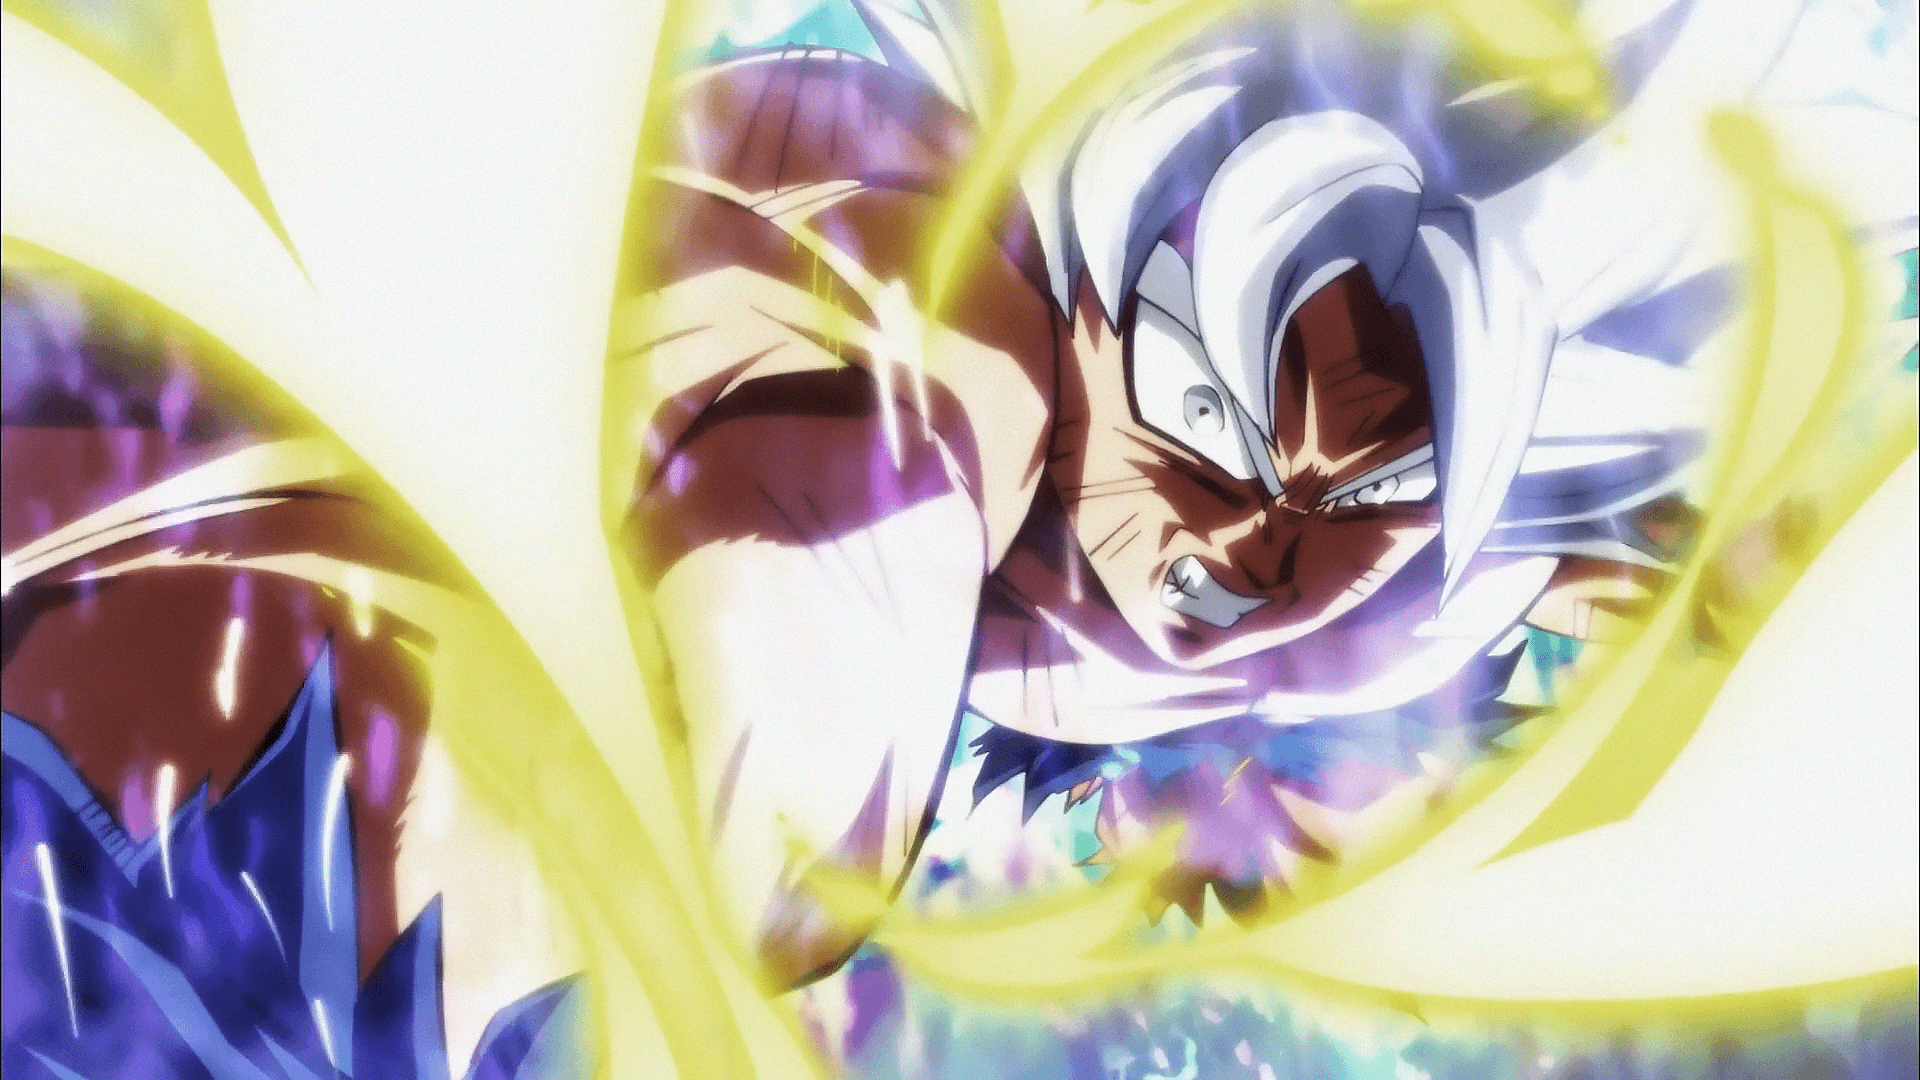 ultra instinct goku hd, goku wallpapers